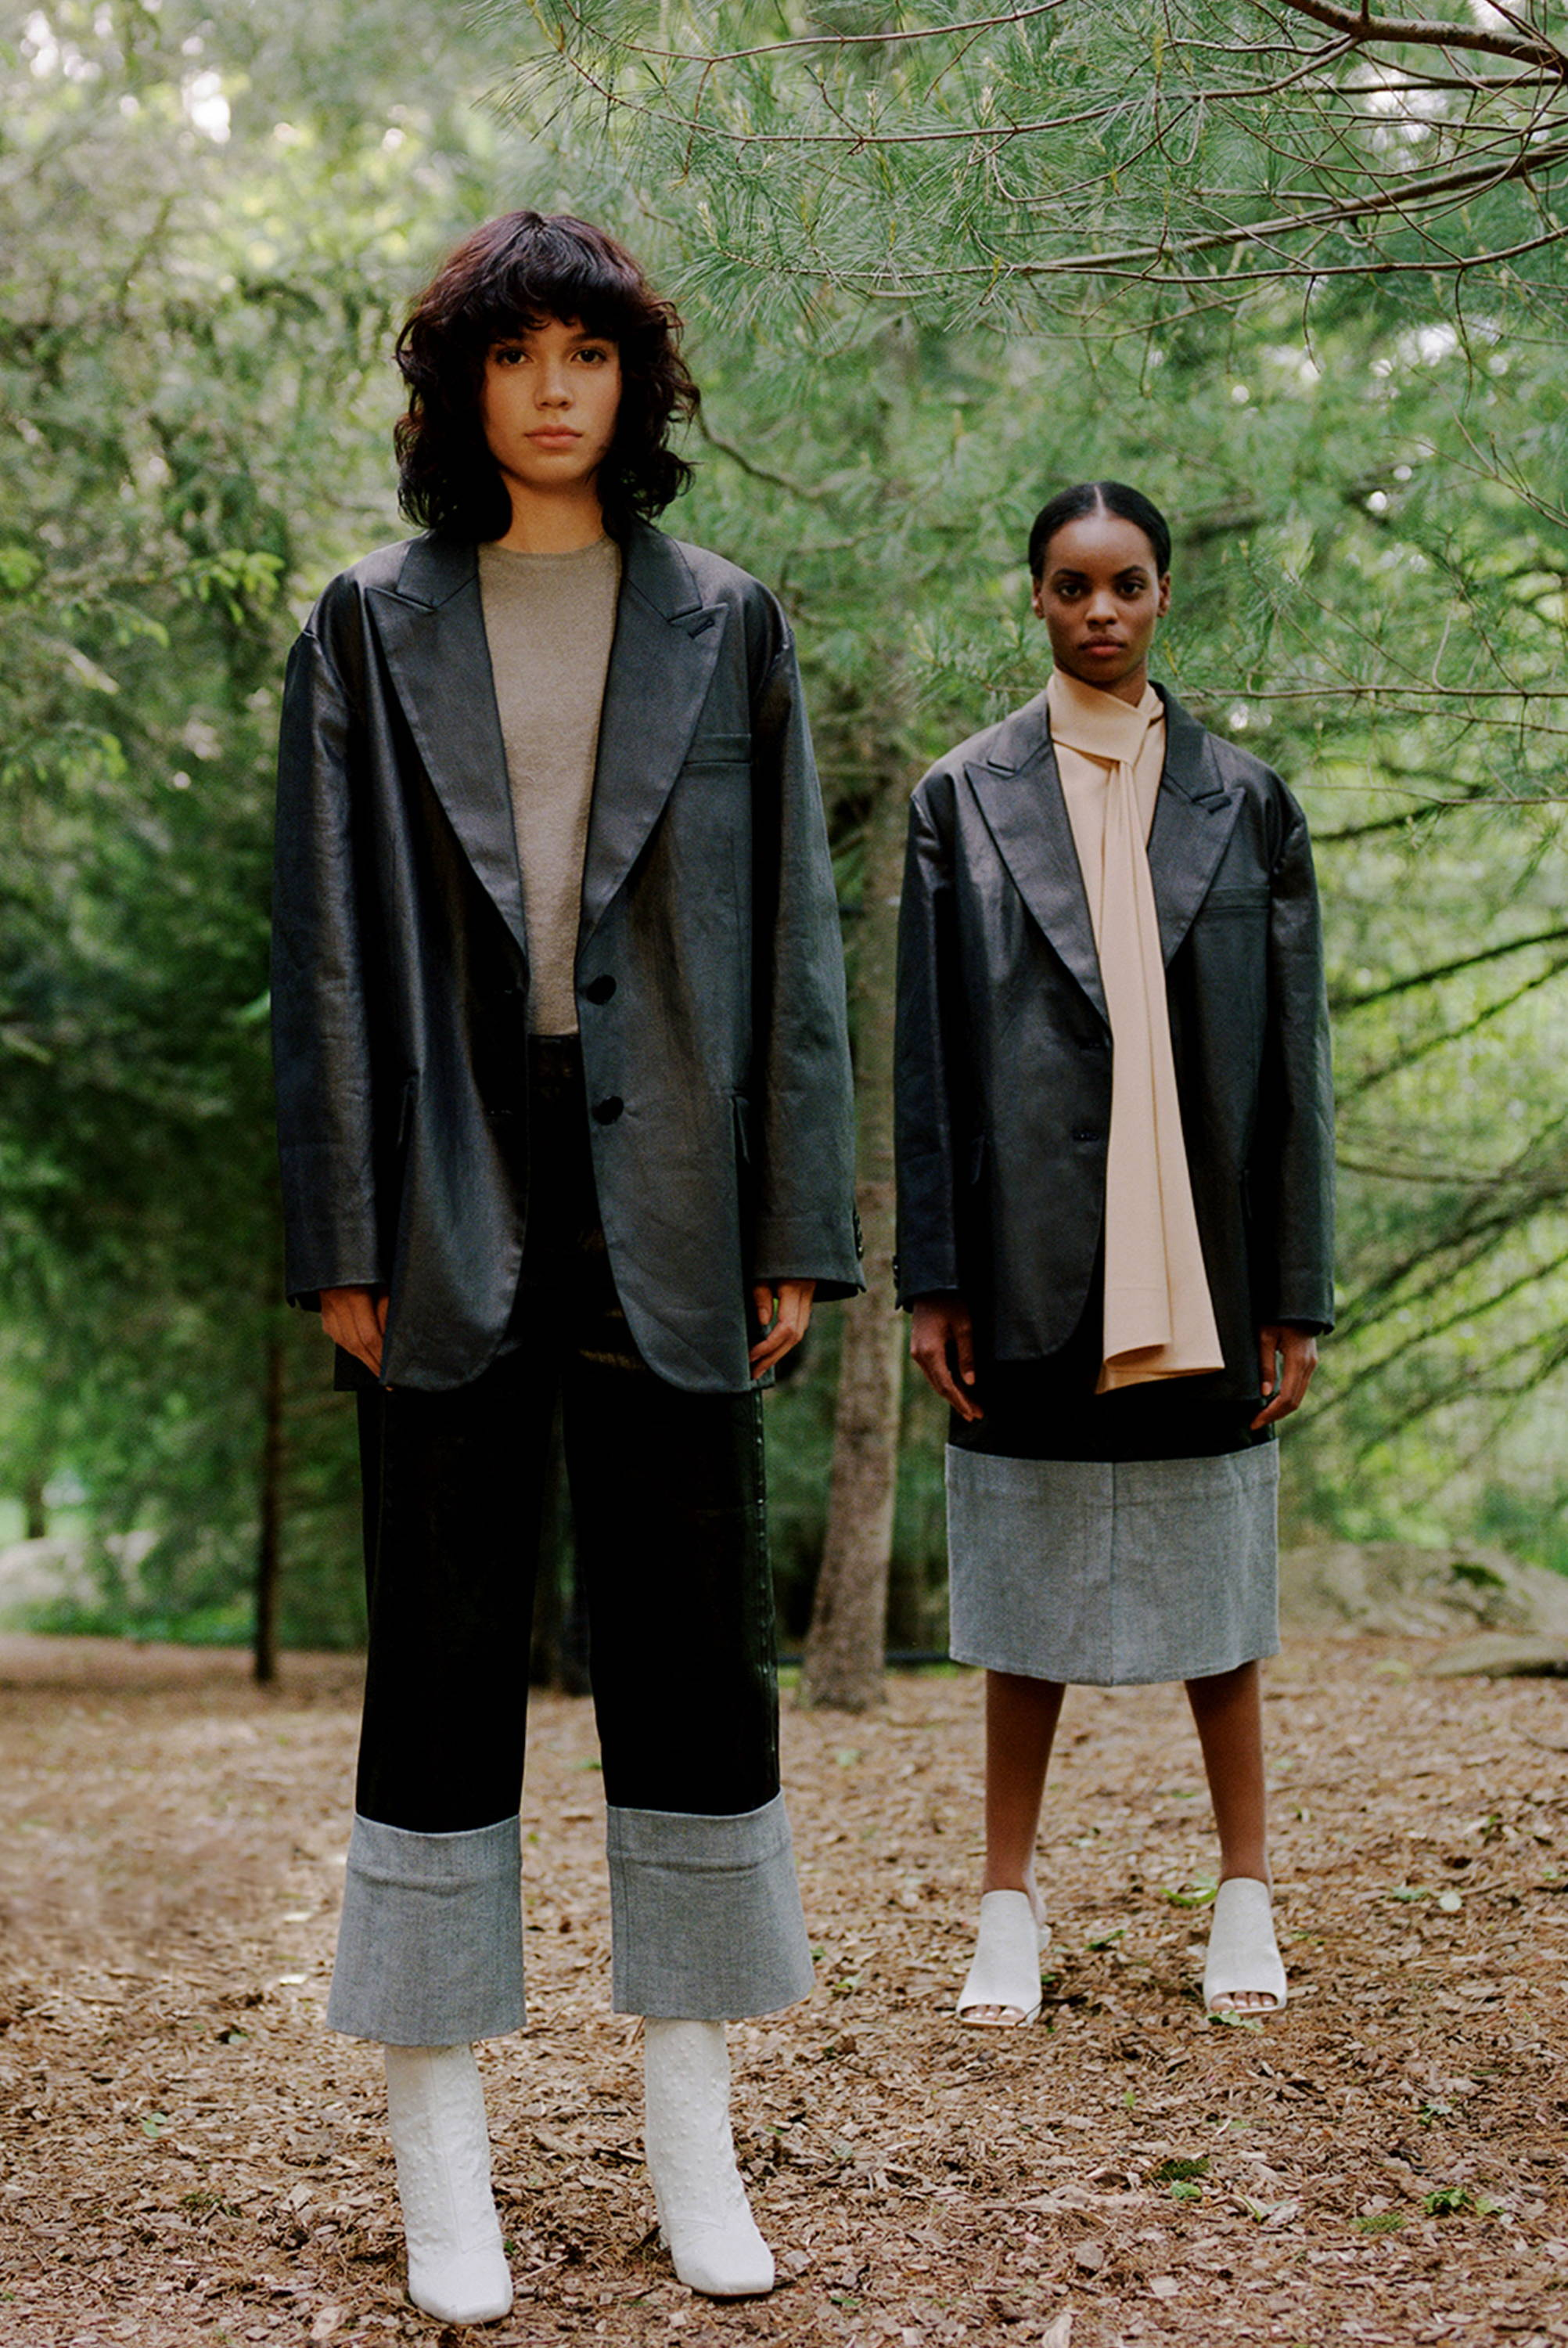 Two models wearing coated black denim and white shoes.